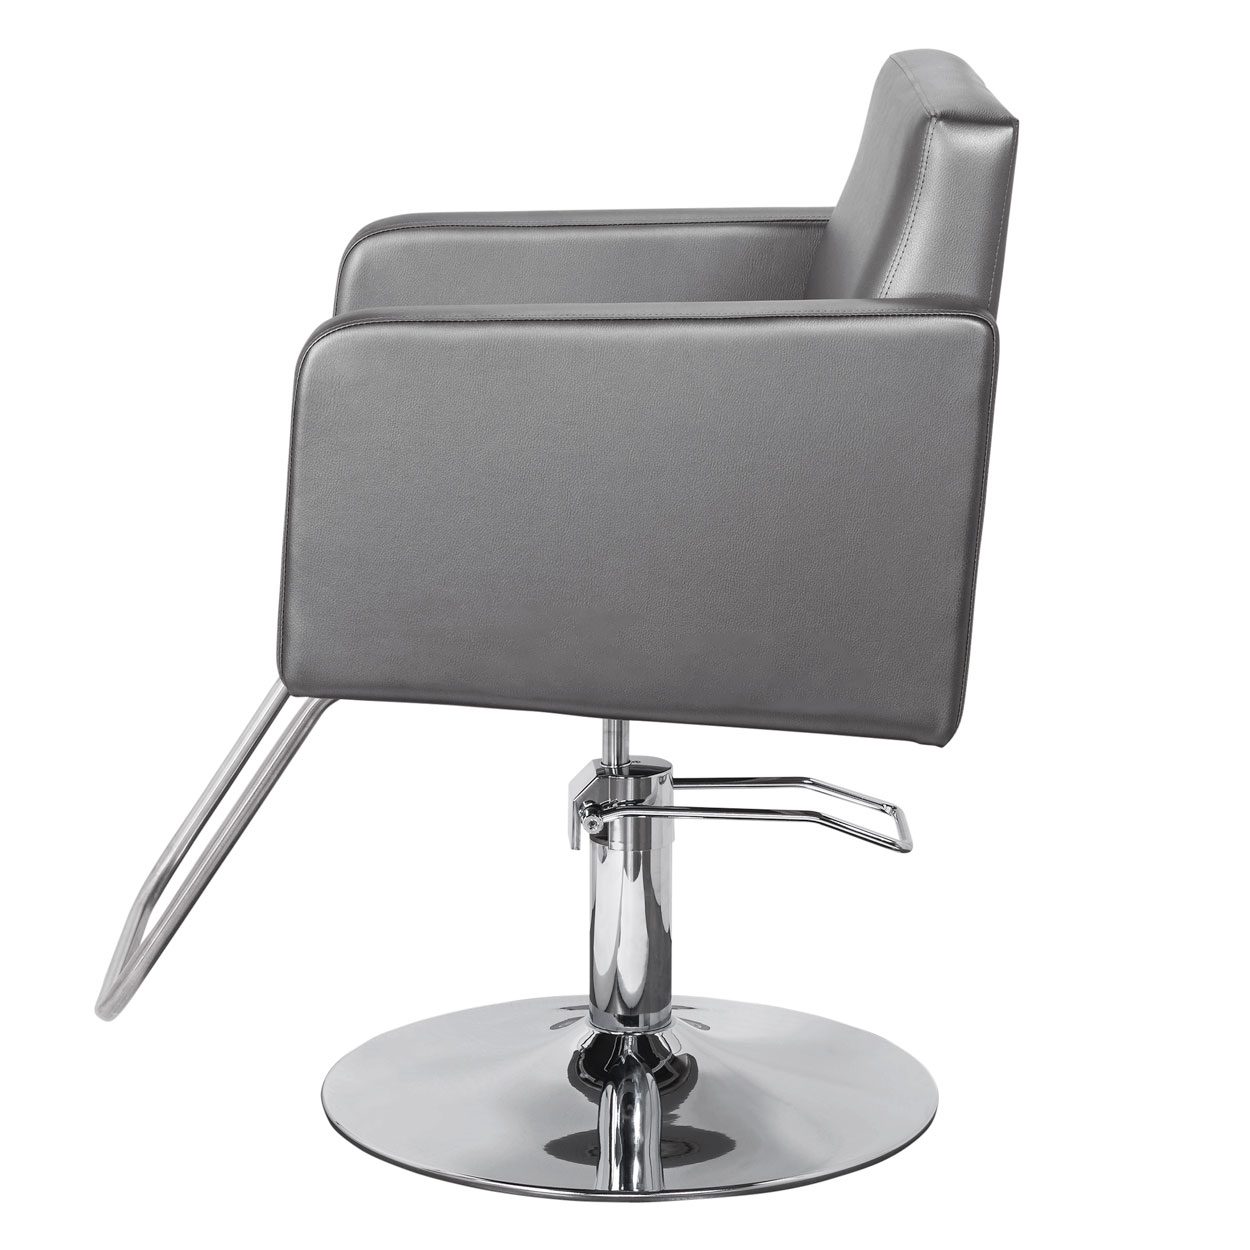 Modin Hair Salon Styling Chair in Grey or White alternative product image 2